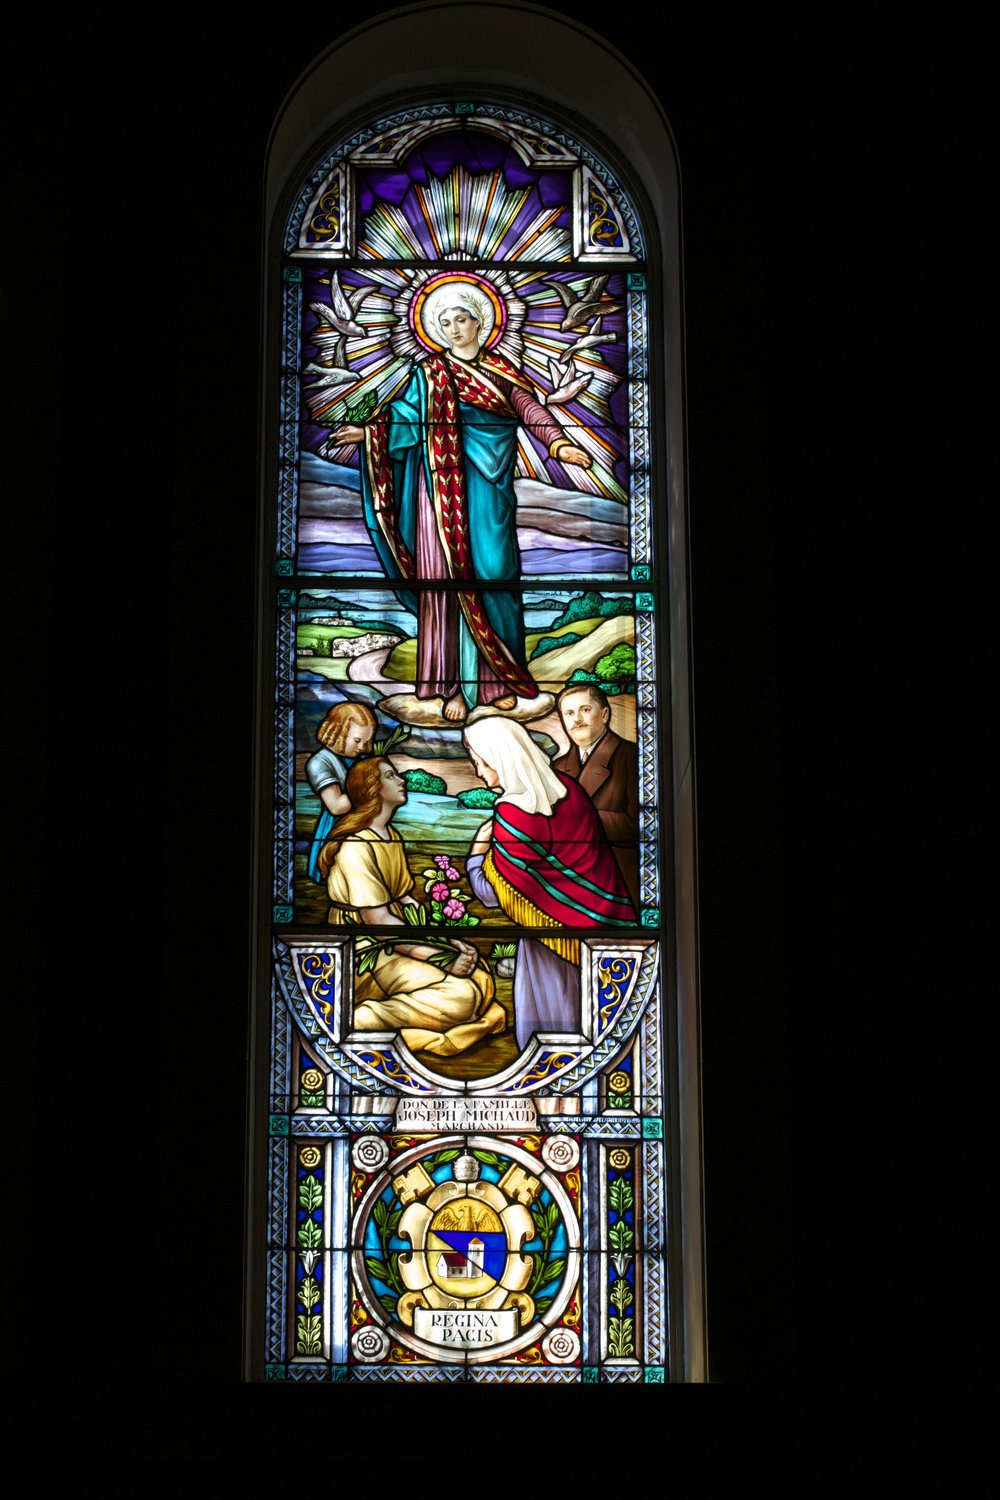 man-in-stained-glass-window-full.jpg